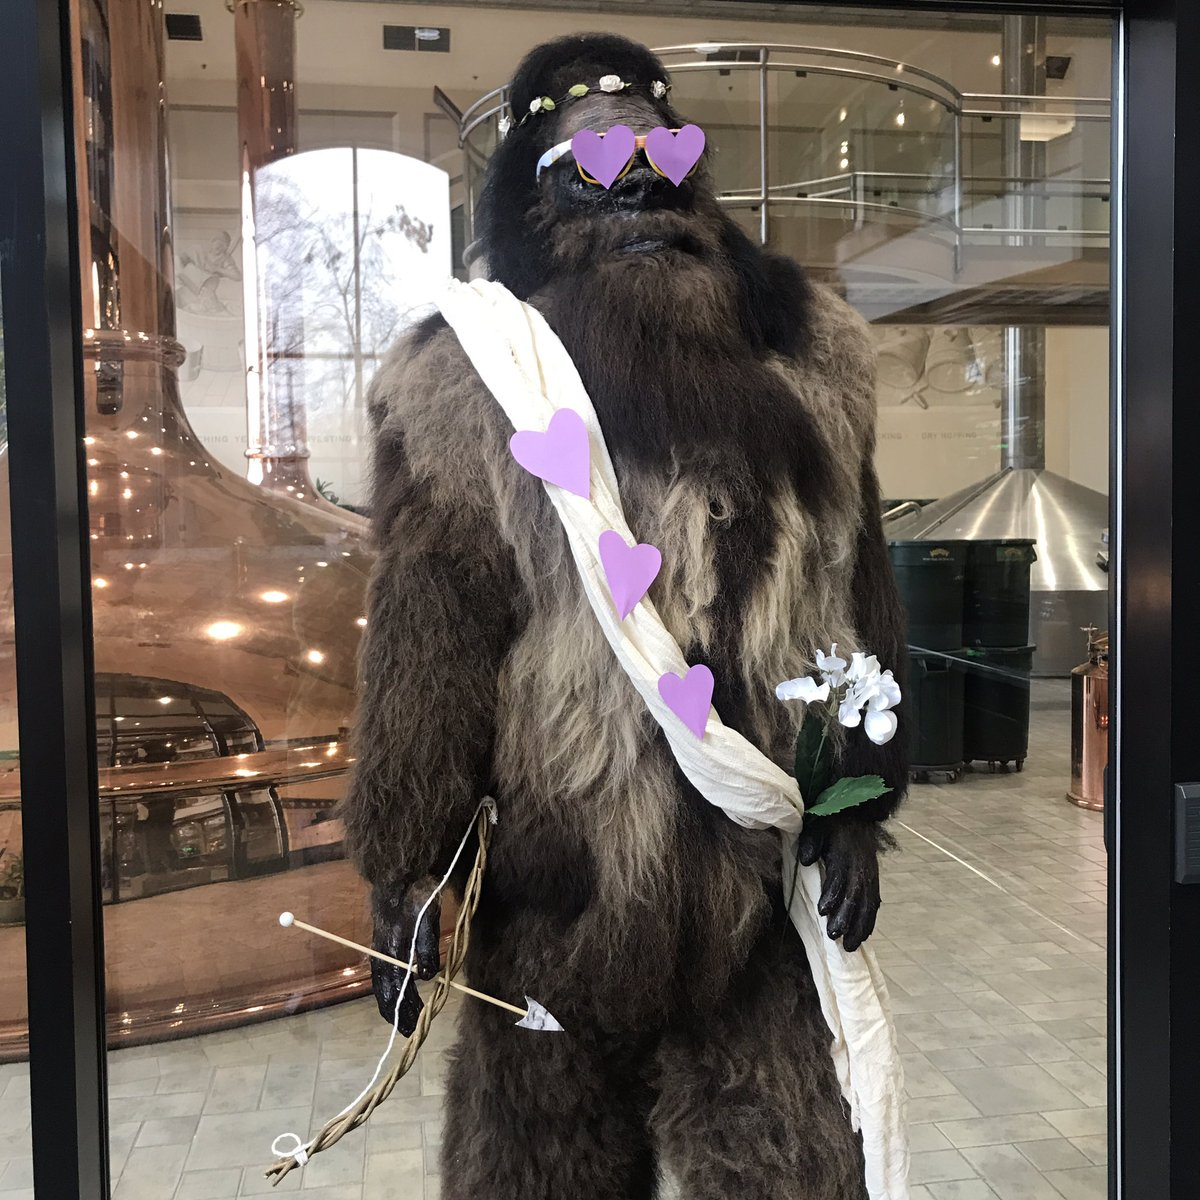 Most eligible bachelor on this Valentine's Day. #BeMyValentine #Bigfoot #HappyValentineDay<br>http://pic.twitter.com/KmycqolRpO